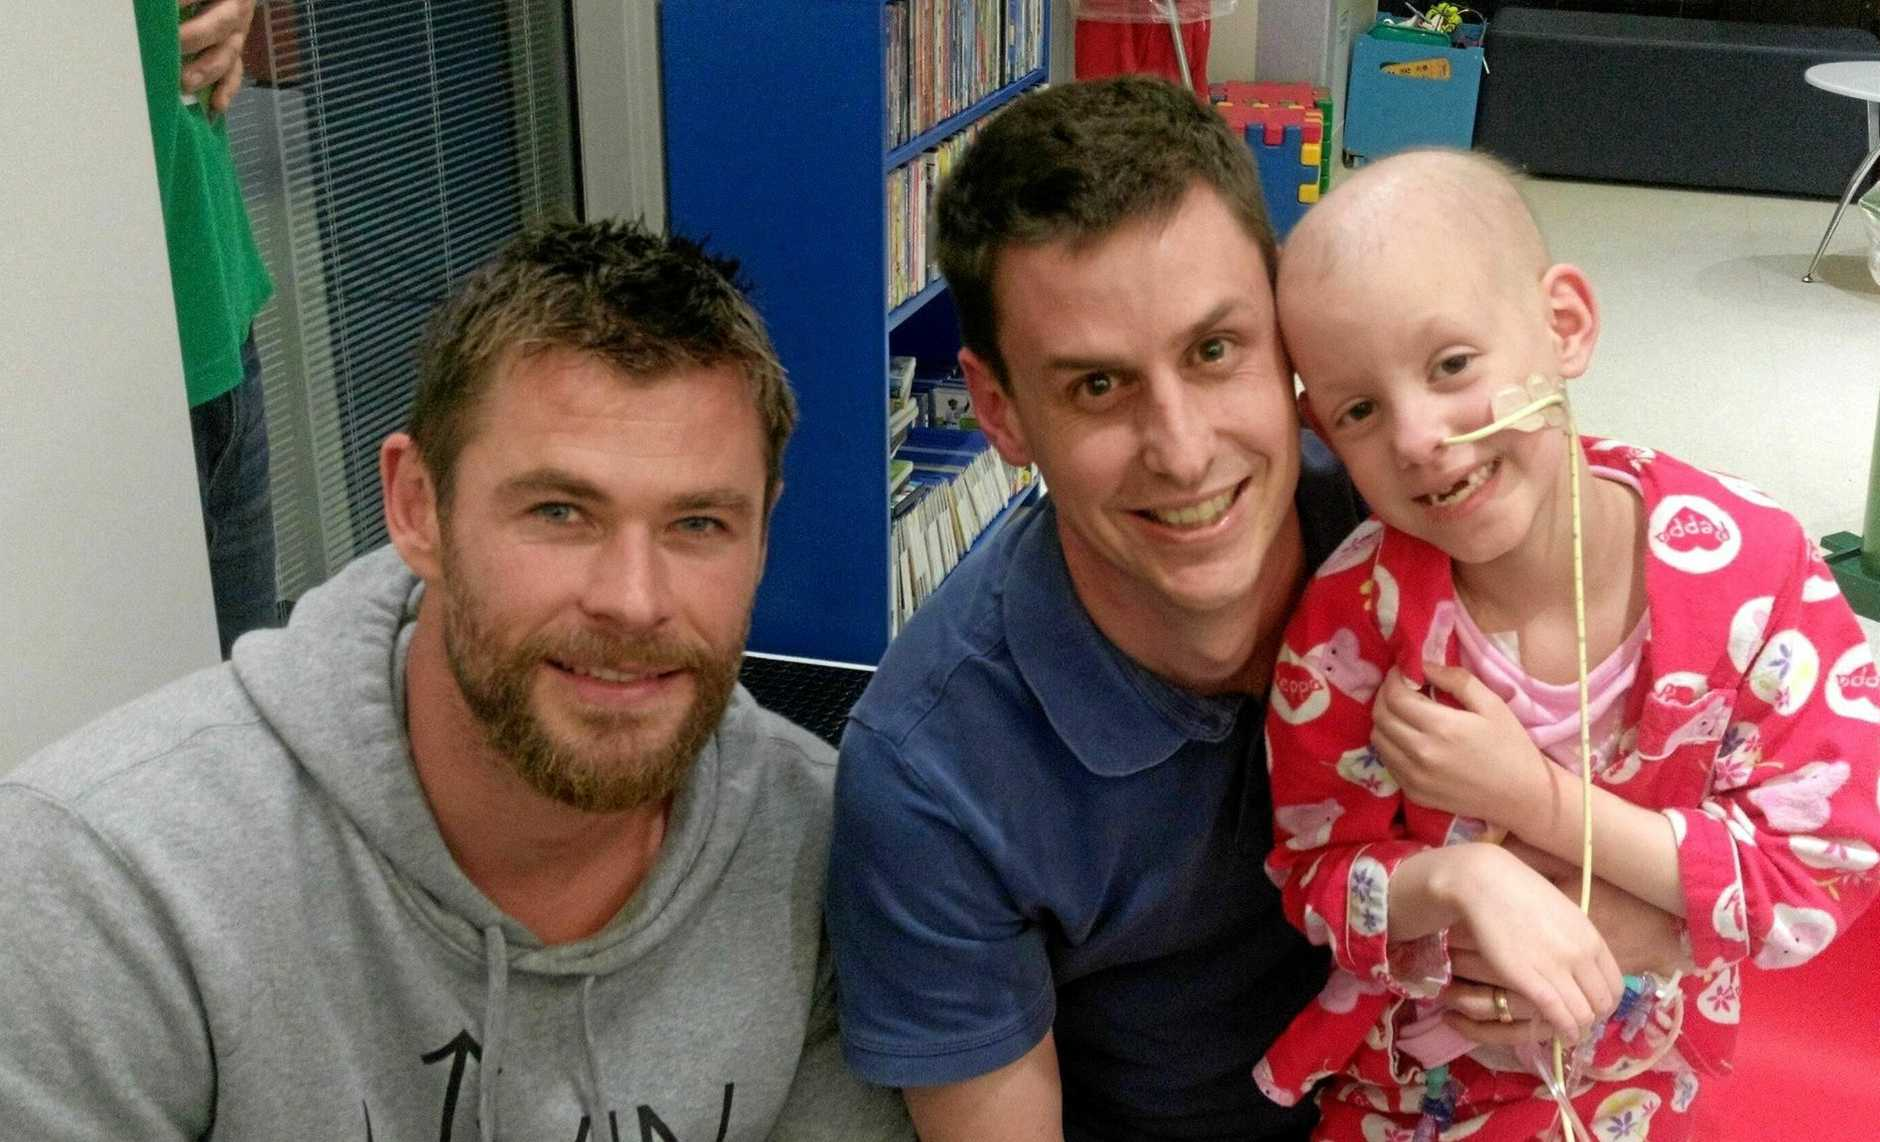 STAR VISIT: Hollywood heartthrob Chris Hemsworth visits Craig Box and his daughter Violet Box at Lady Cilento Children's Hospital in Brisbane during the filming of Thor Ragnarok in 2016.